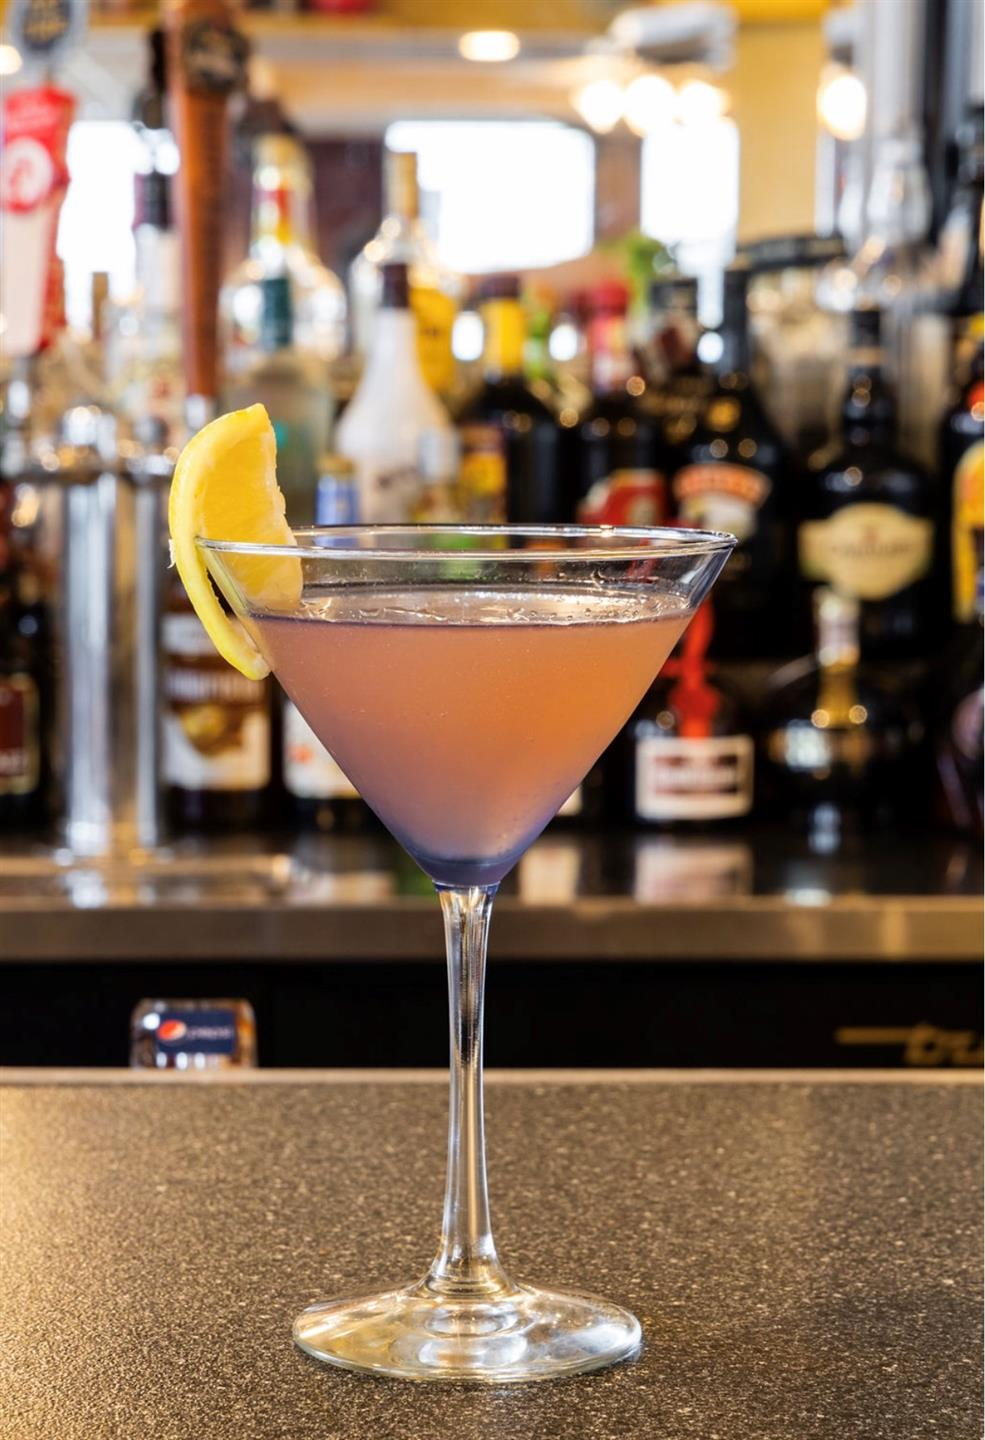 a pink martini on the bar with a lemon wedge